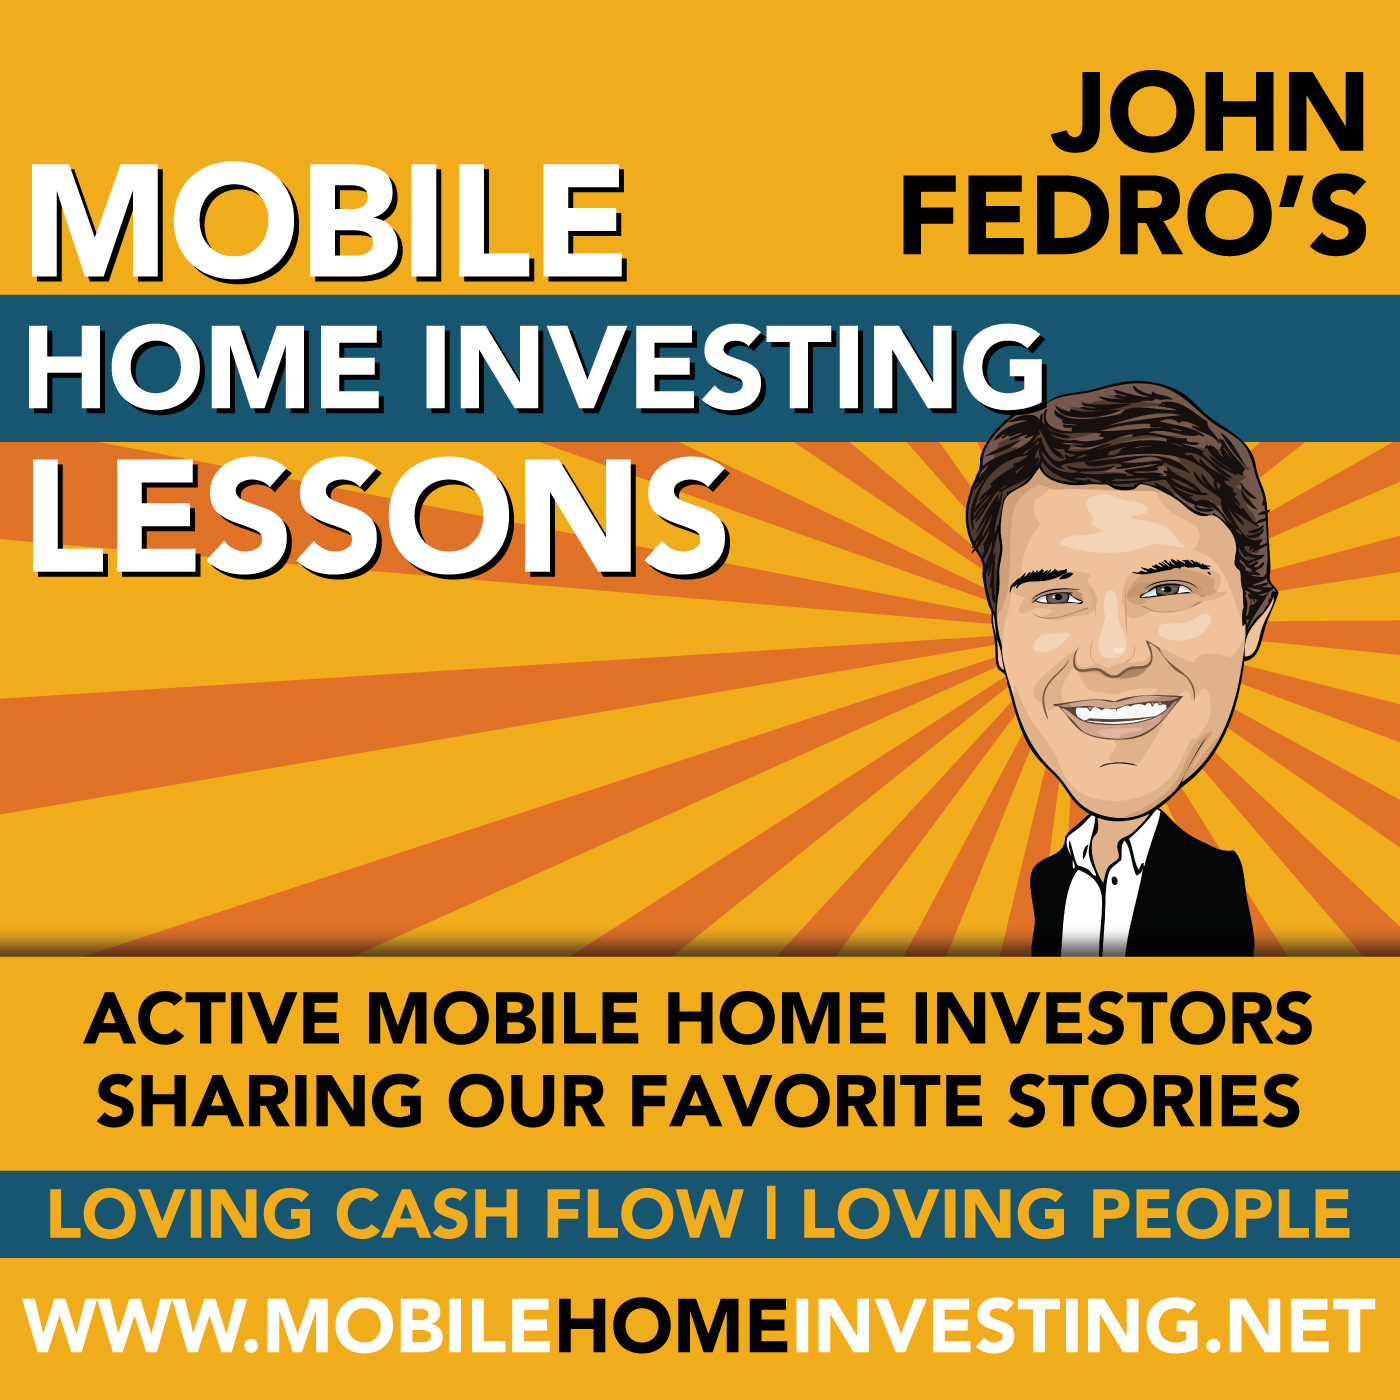 Mobile Home Investing Lessons Podcast